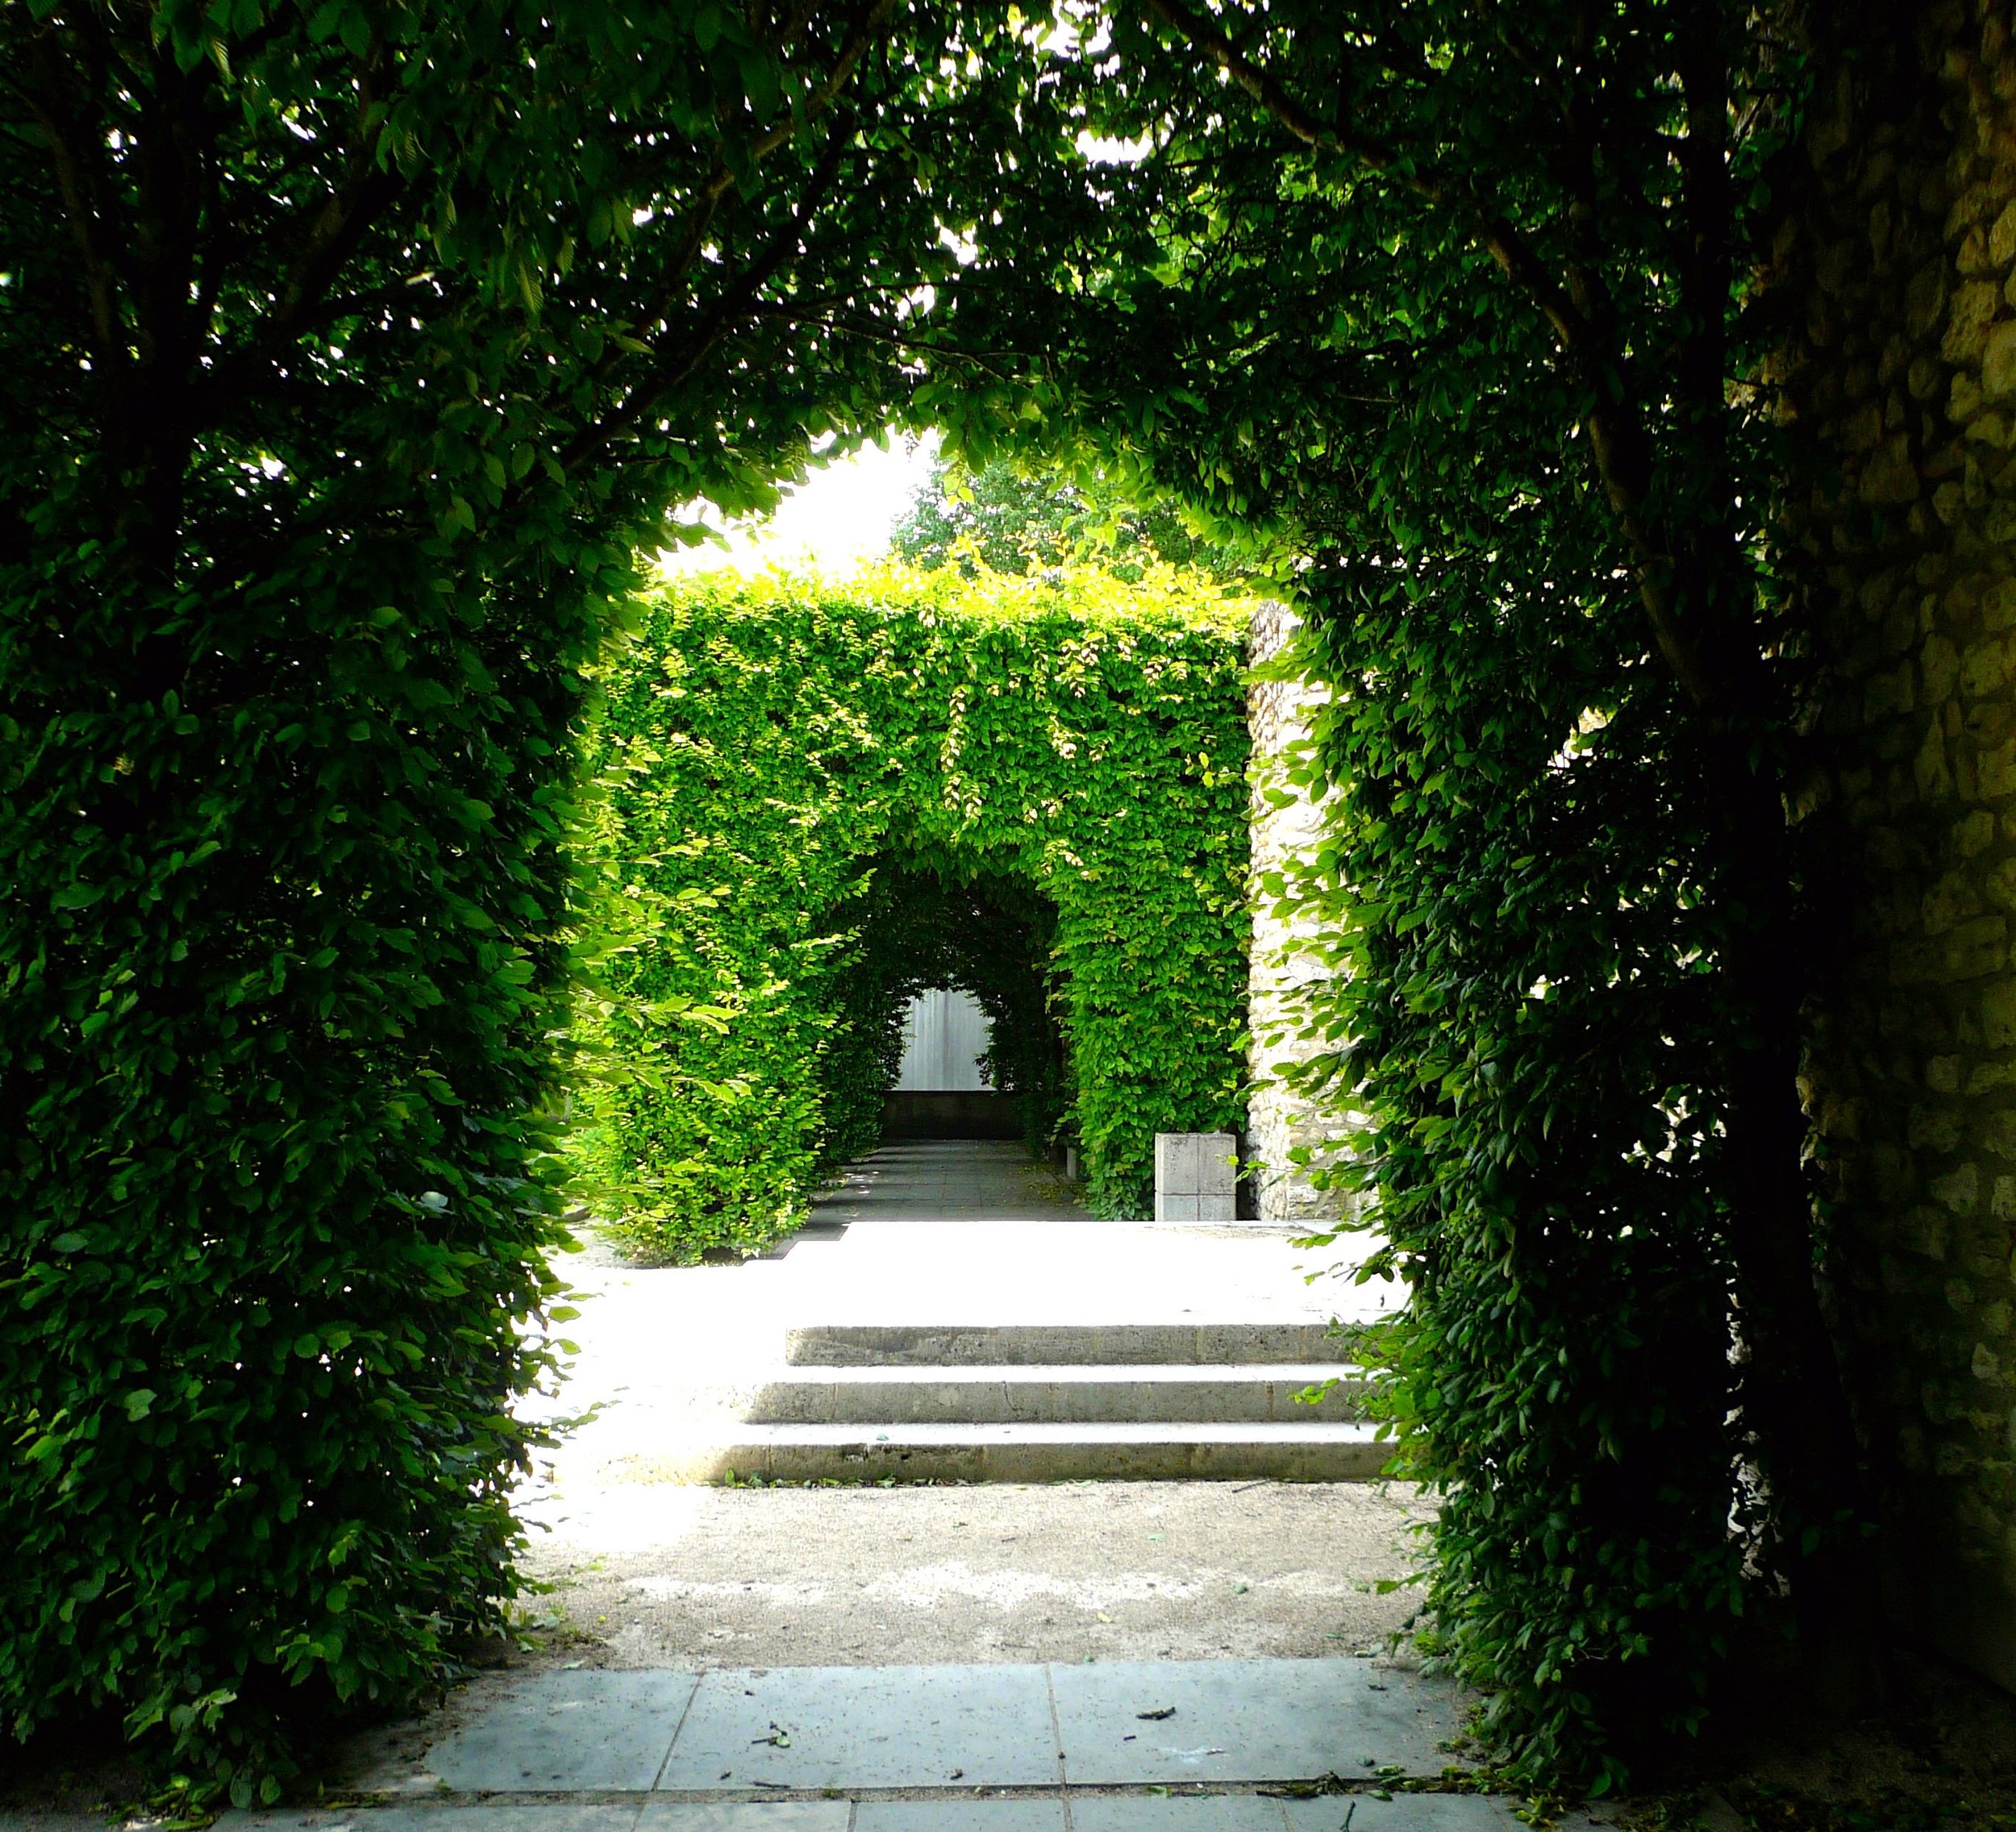 Through an archway of hedges